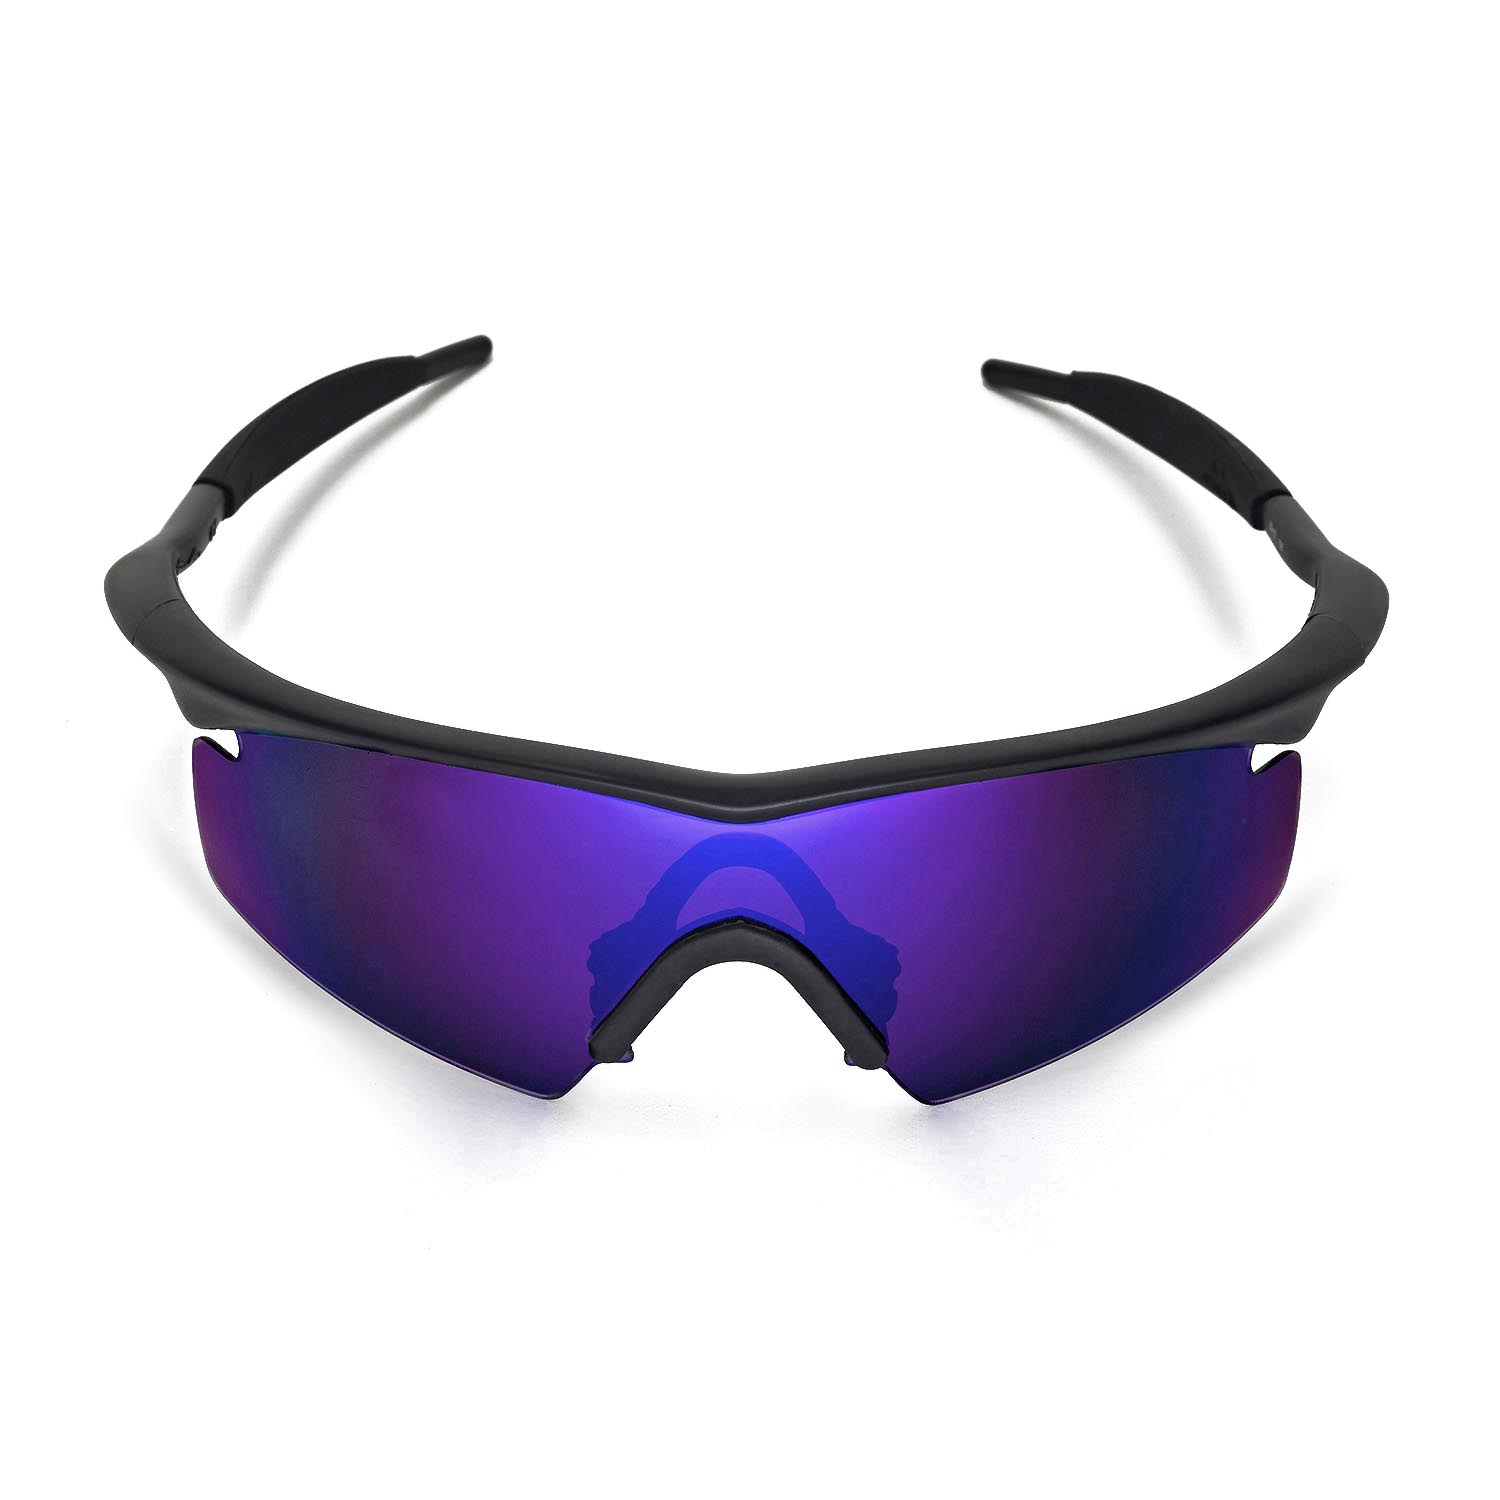 New Wl Polarized Purple Replacement Lenses For Oakley M